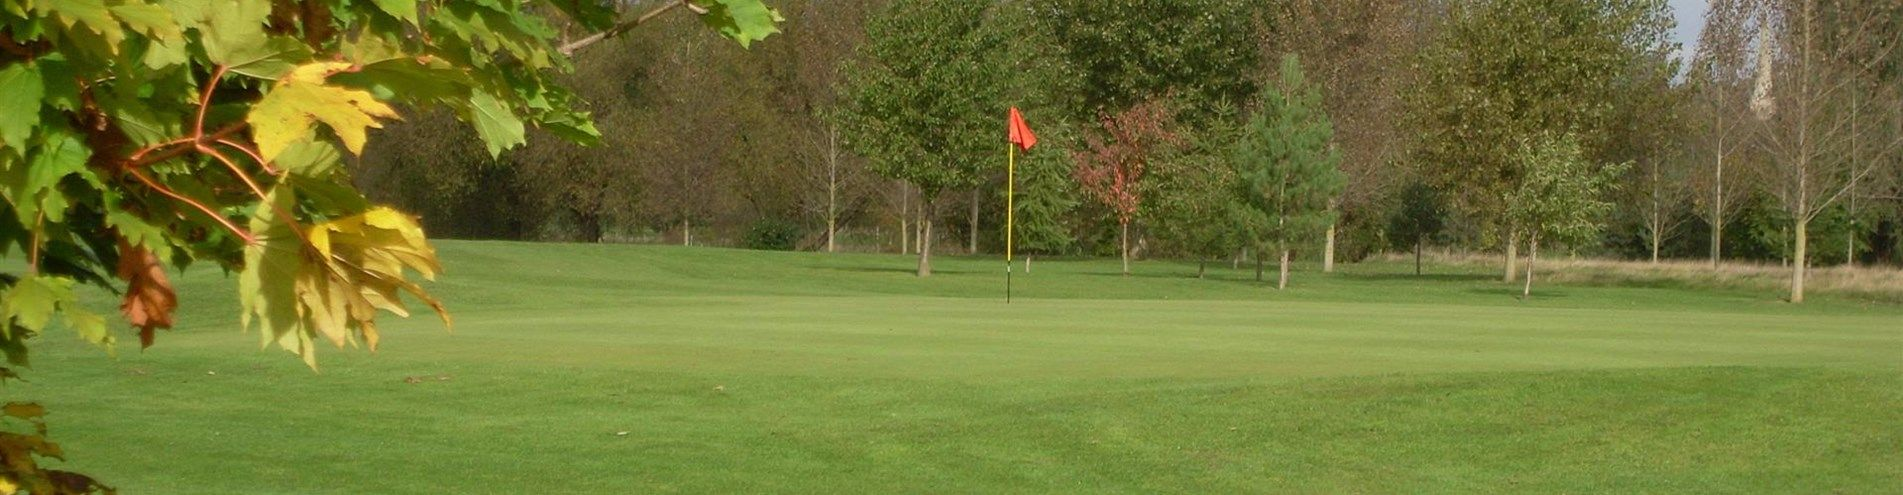 Beedles lake golf club cover picture